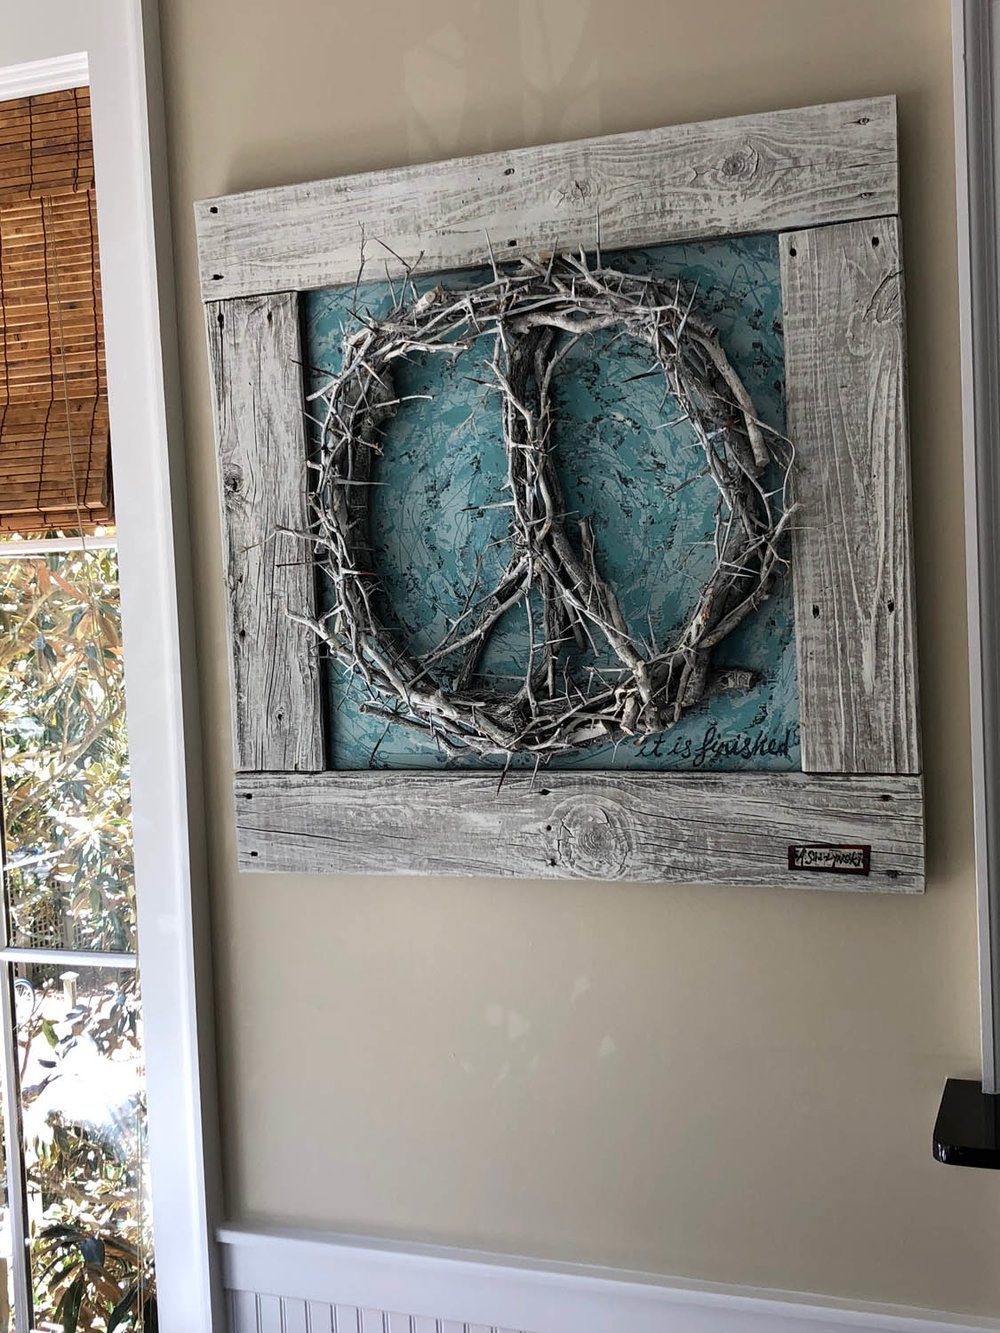 Grapevine peace sign at Airbnb in Grayton Beach, Florida